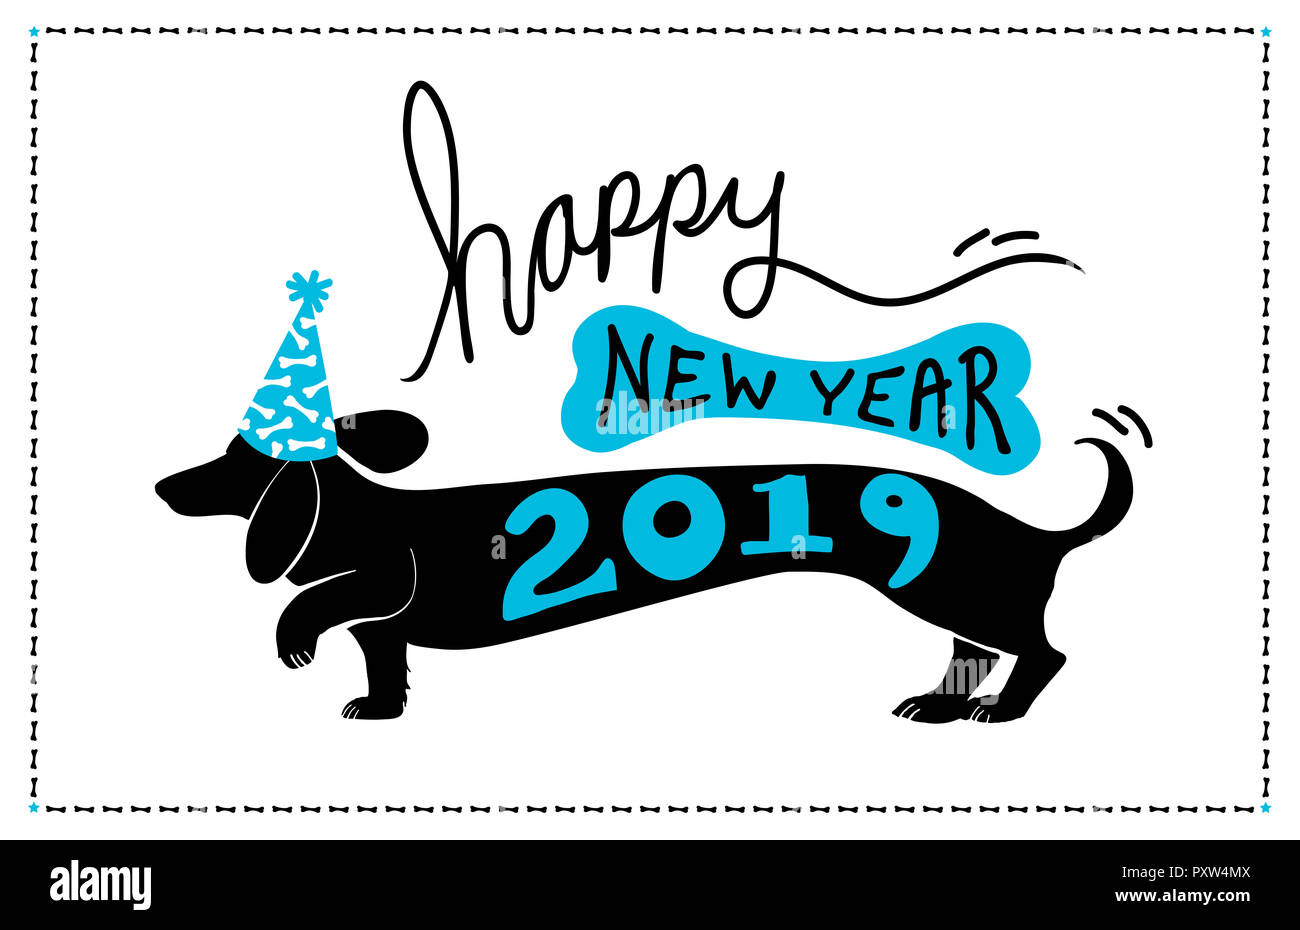 happy new year 2019 background design with cute fun dachshund doxie dog wearing blue party hat with bone pattern and 2019 typography on the puppy art